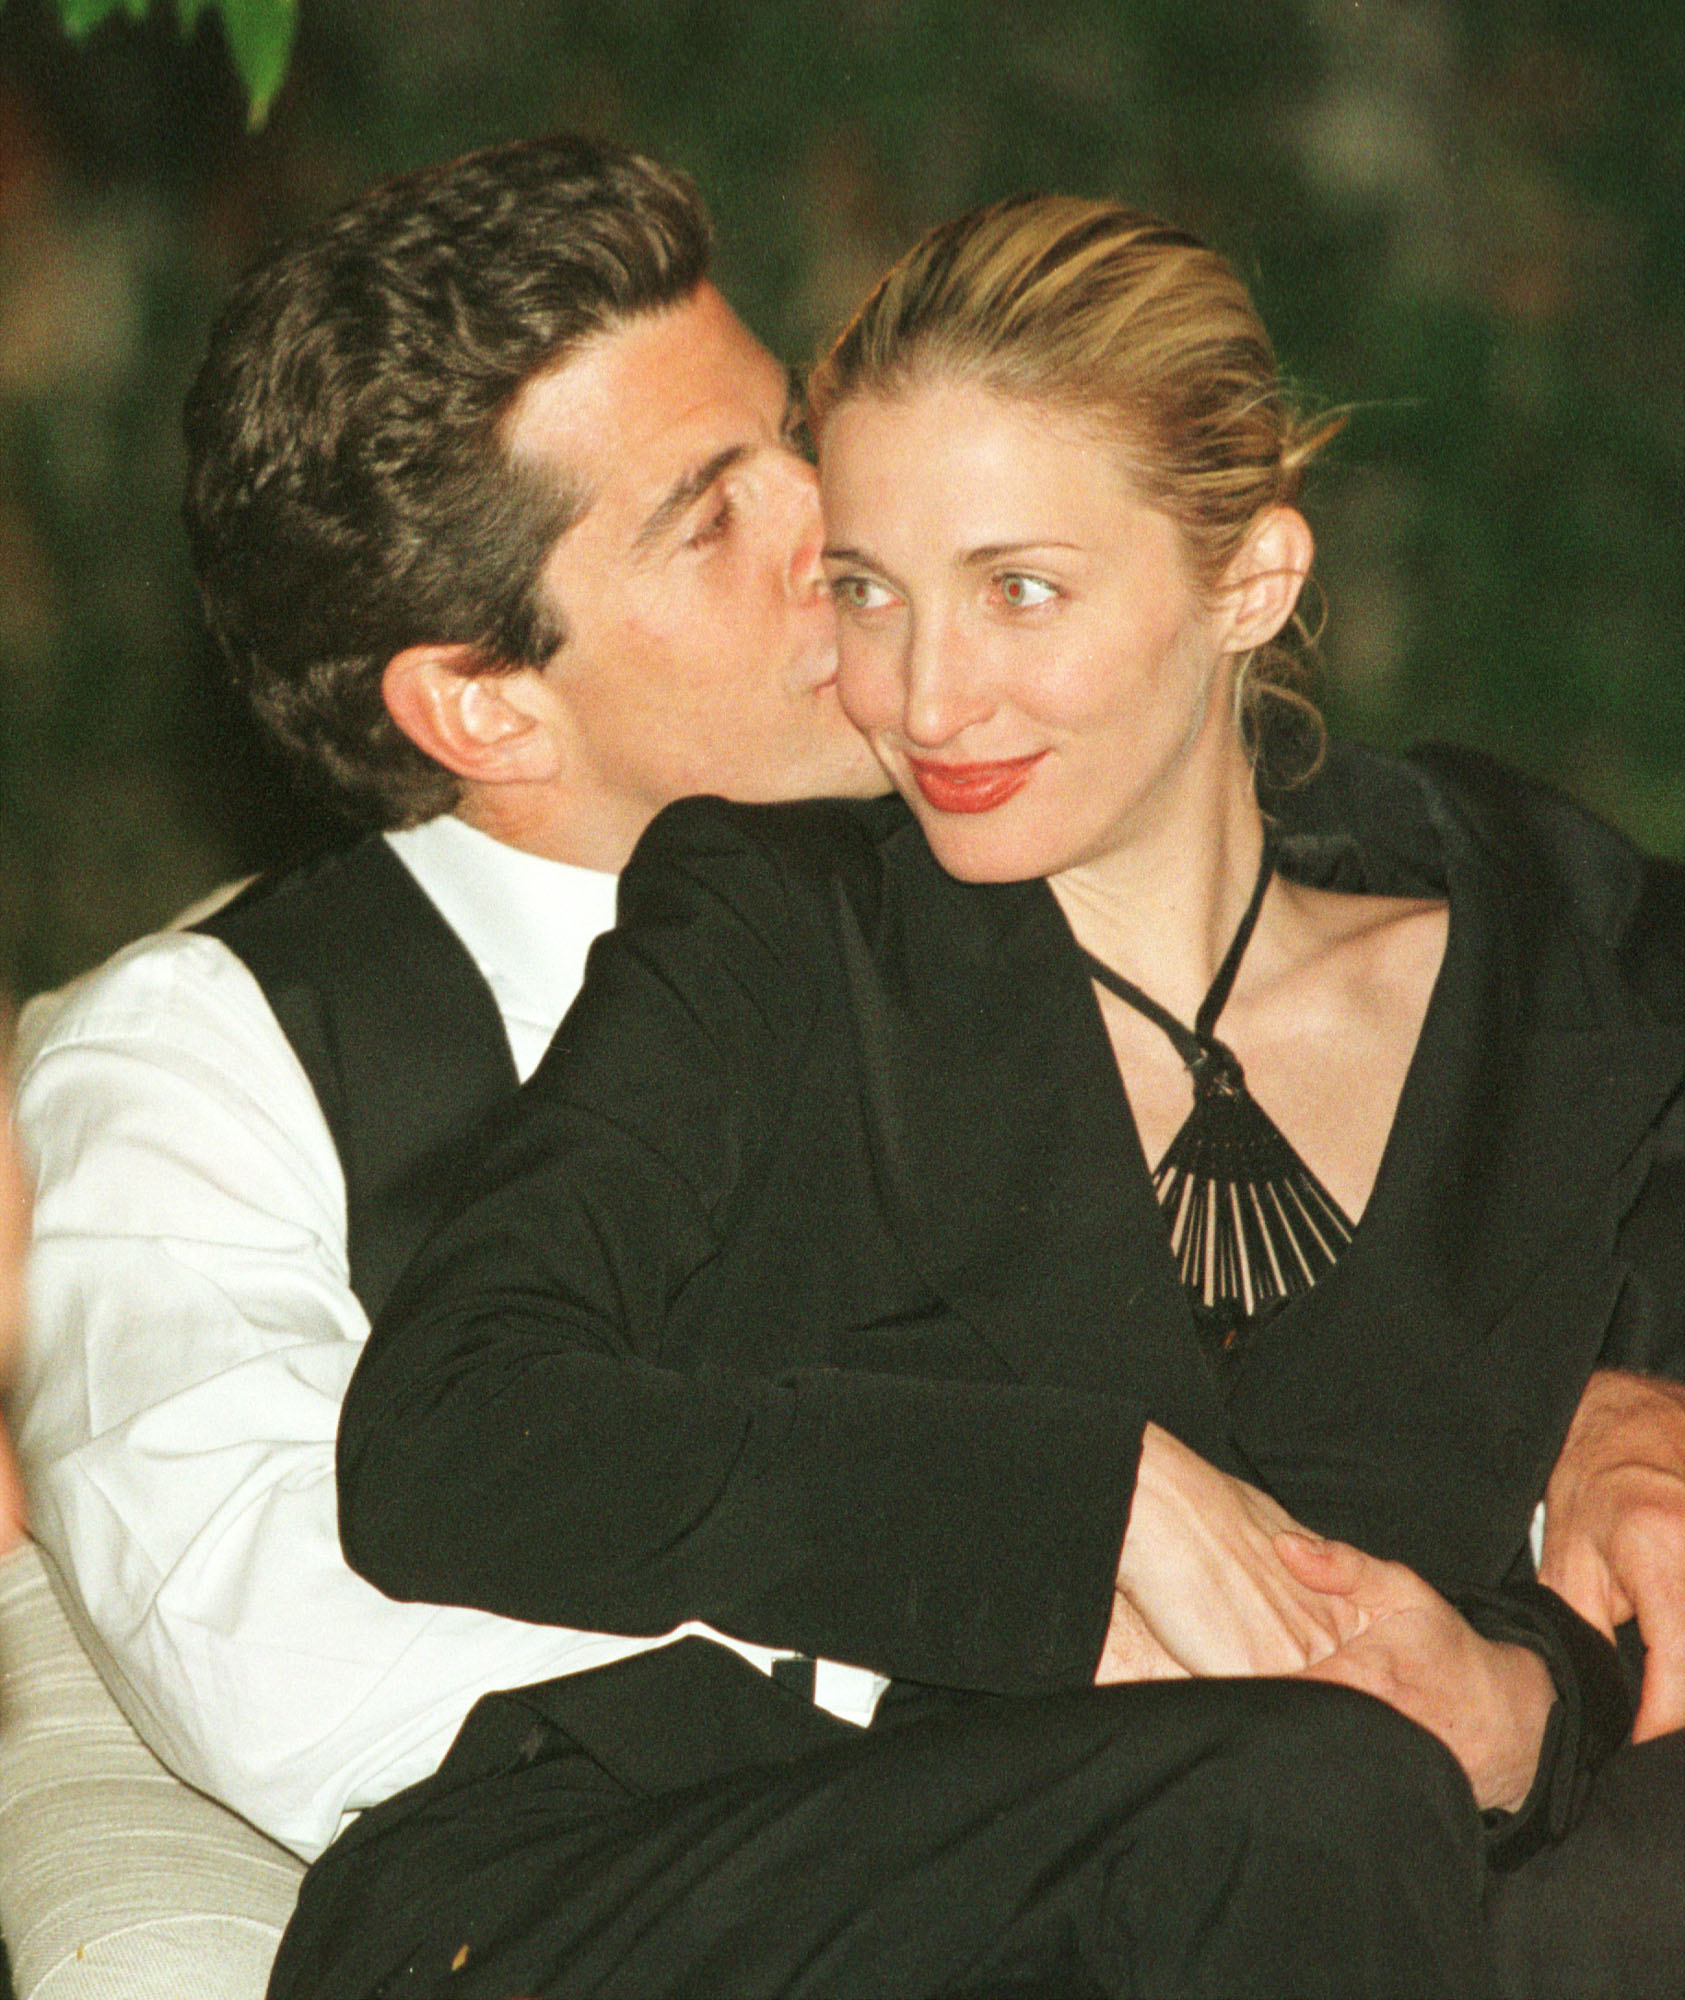 Never-Before-Seen Footage from John F. Kennedy Jr. and Carolyn Bessette's 1996 Wedding Has Been Released